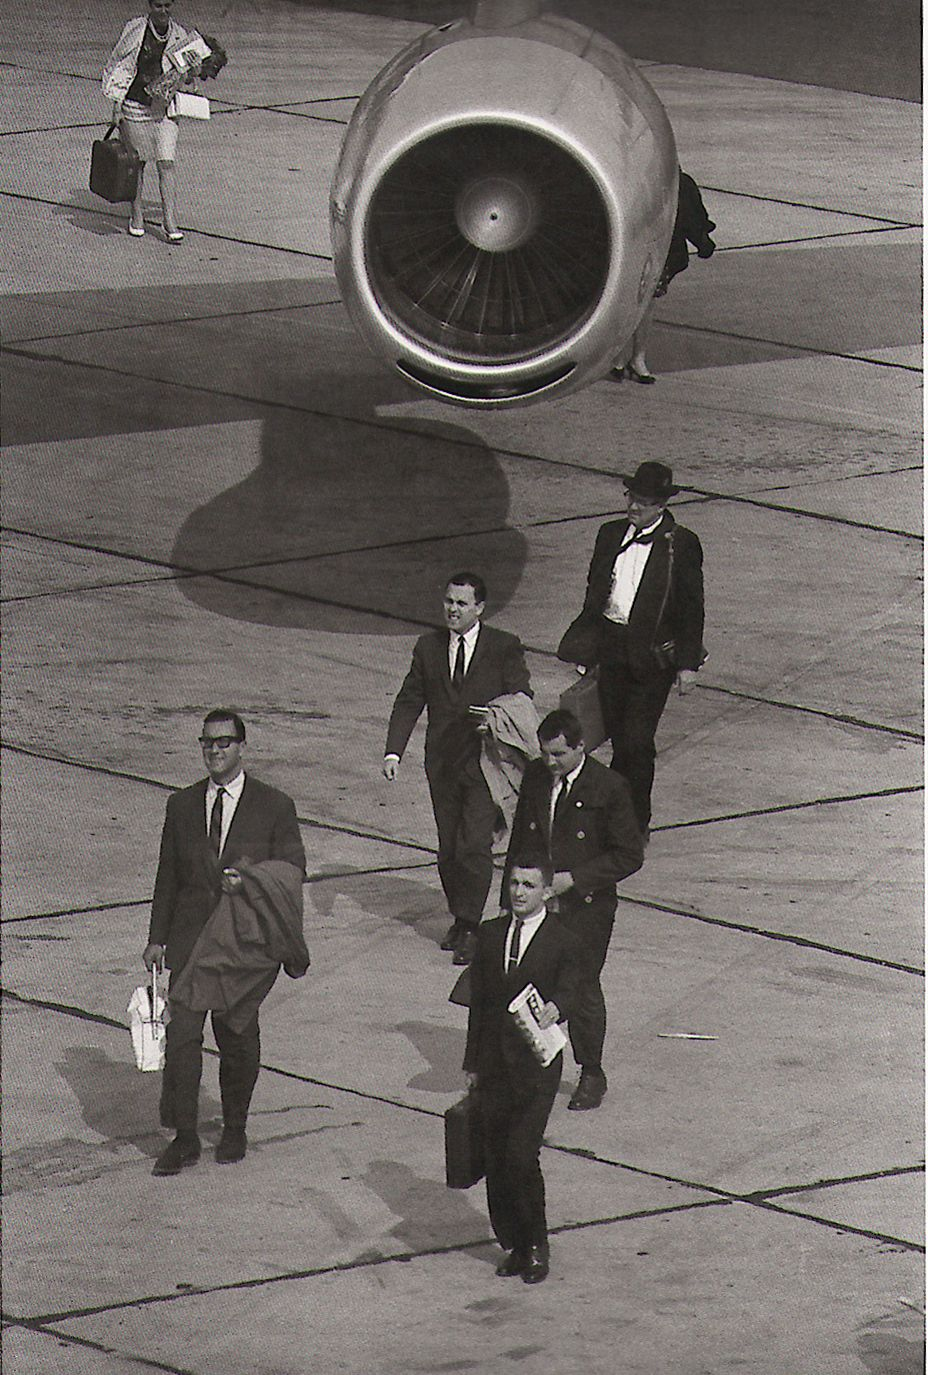 Photo From Arrivals Departures The Airport Pictures Of Garry Winogrand Garry Winogrand Street Photography Photography